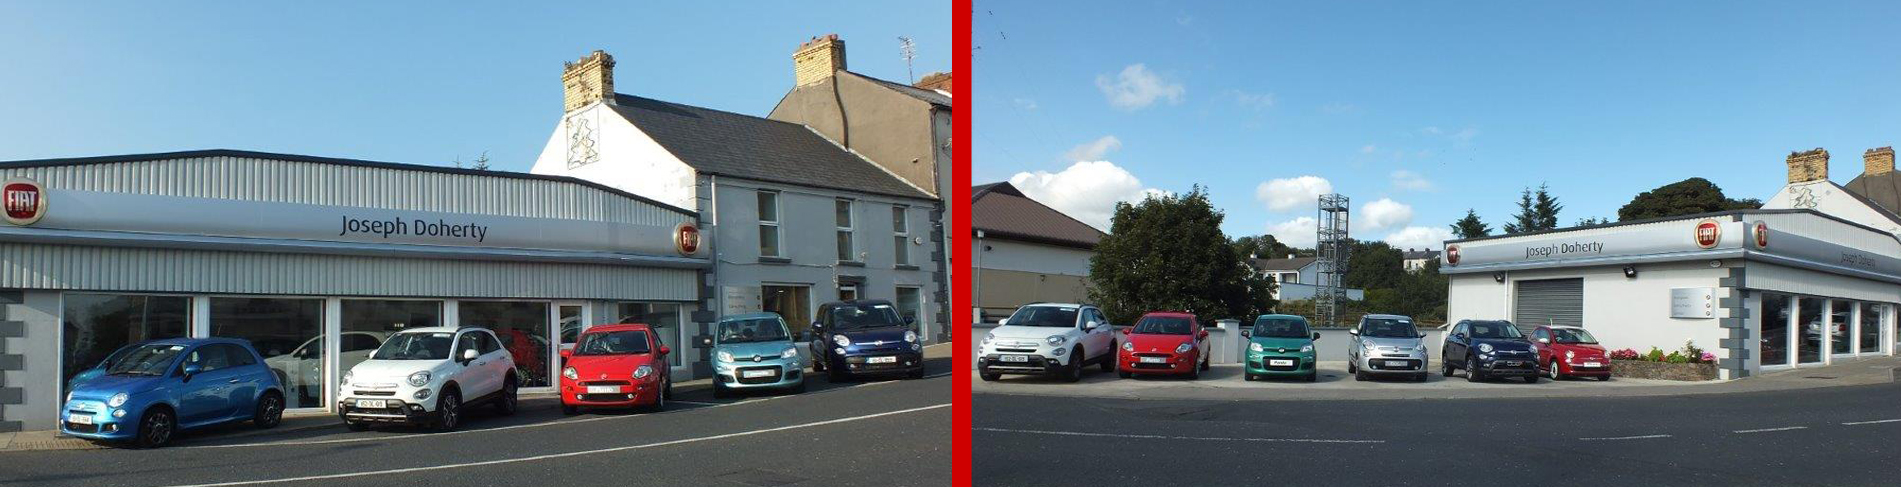 Joseph Doherty Car Sales